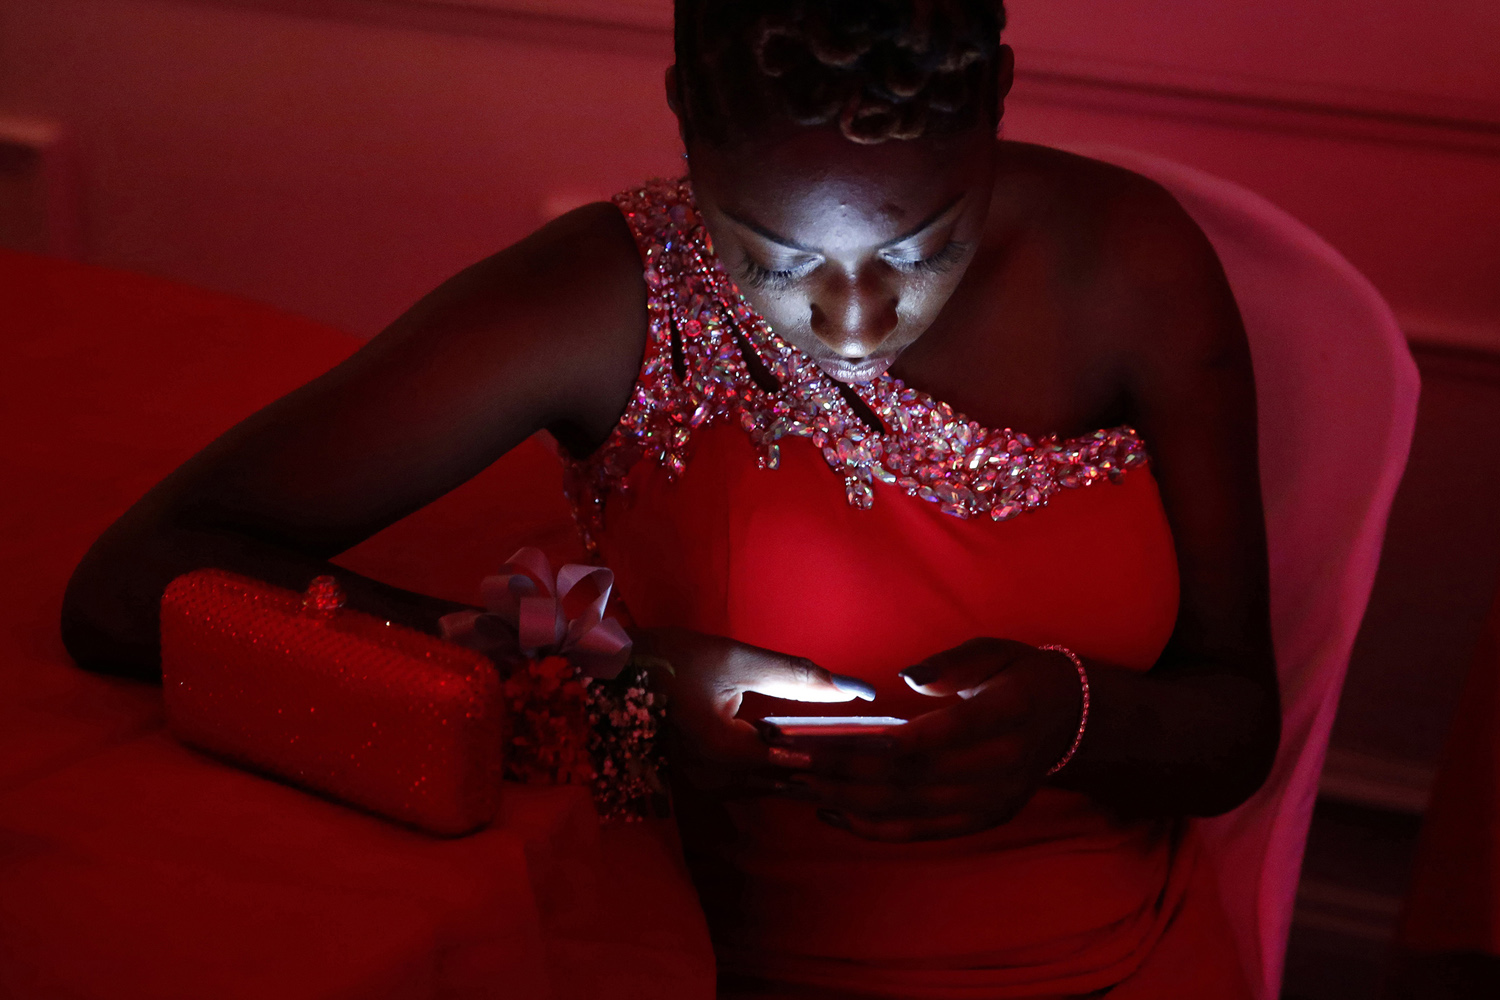 Red Prom - A senior at Irvington High School takes a break from dancing to check her phone during their prom at the Gran Centurion Ballroom in Clark. Wednesday May 20, 2015. Clark, NJ, USA